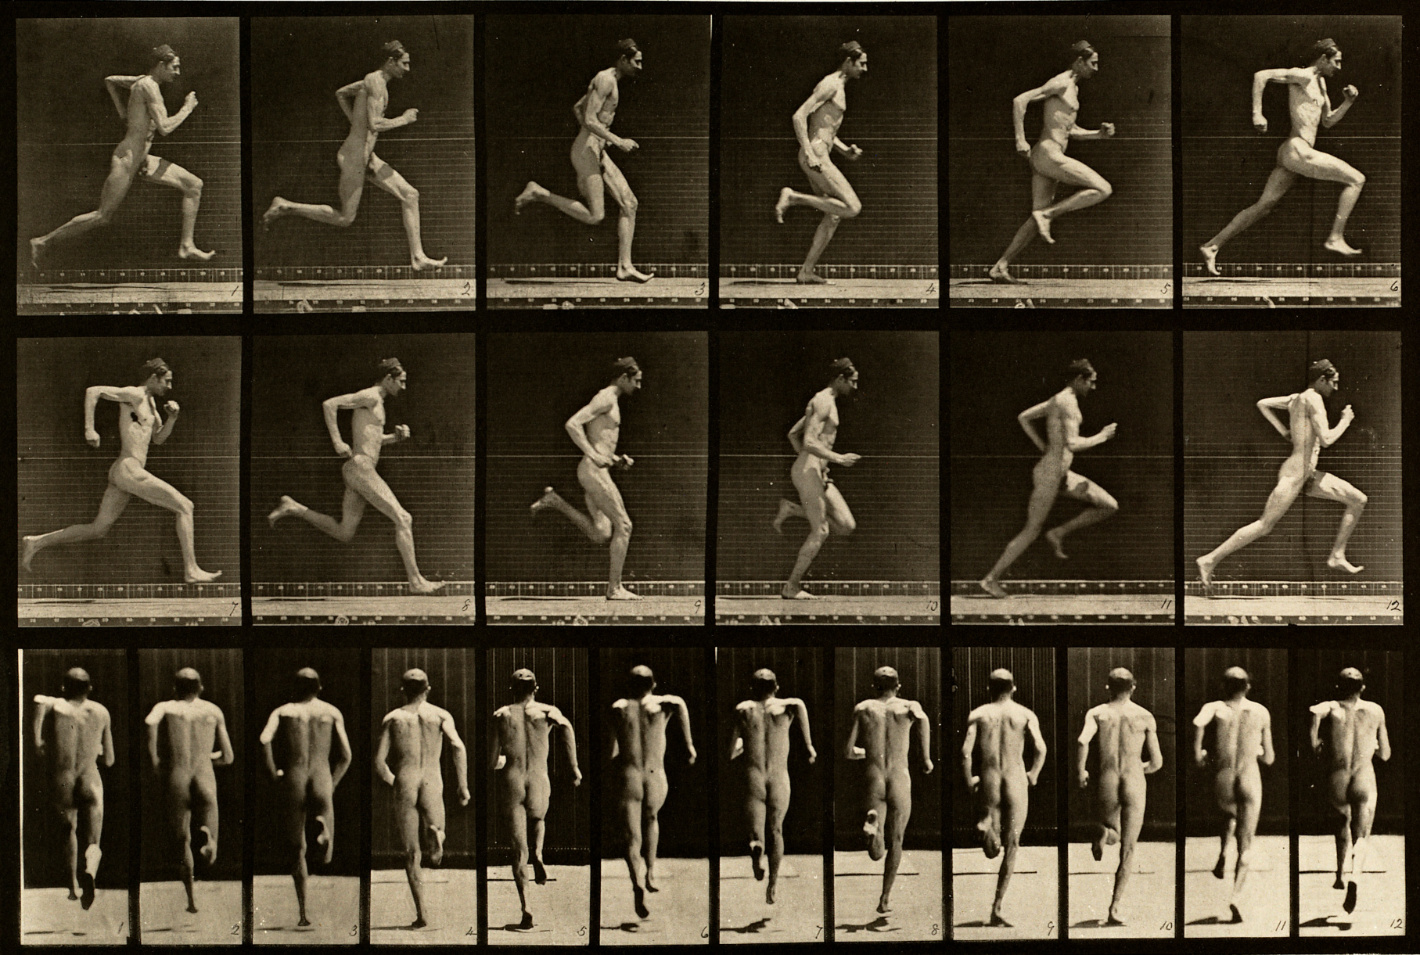 Series of vintage photographs showing nude male figure in different stages of running motion from side and back